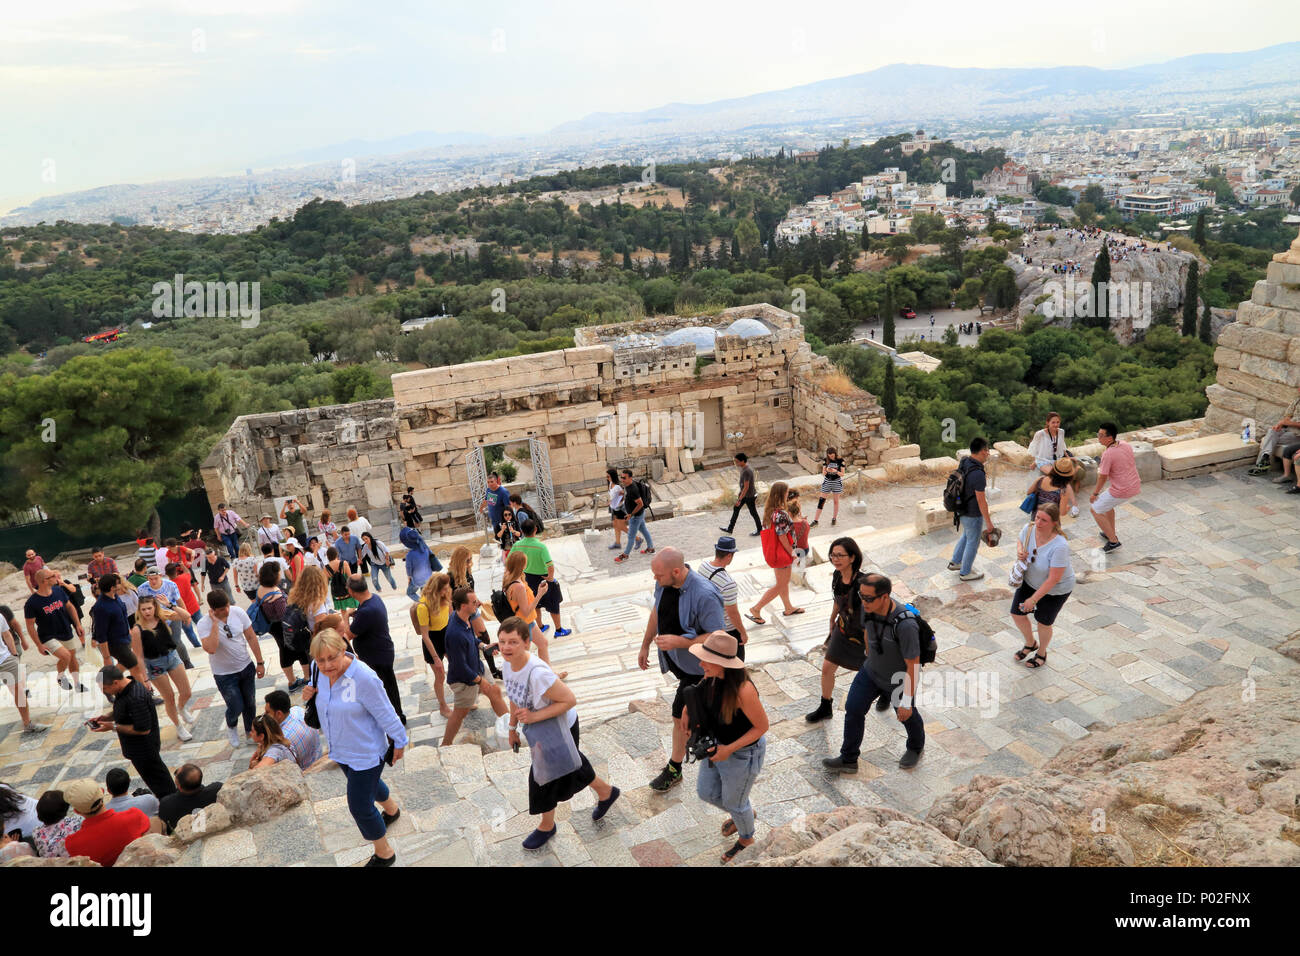 Tourists visiting Acropolis - Stock Image